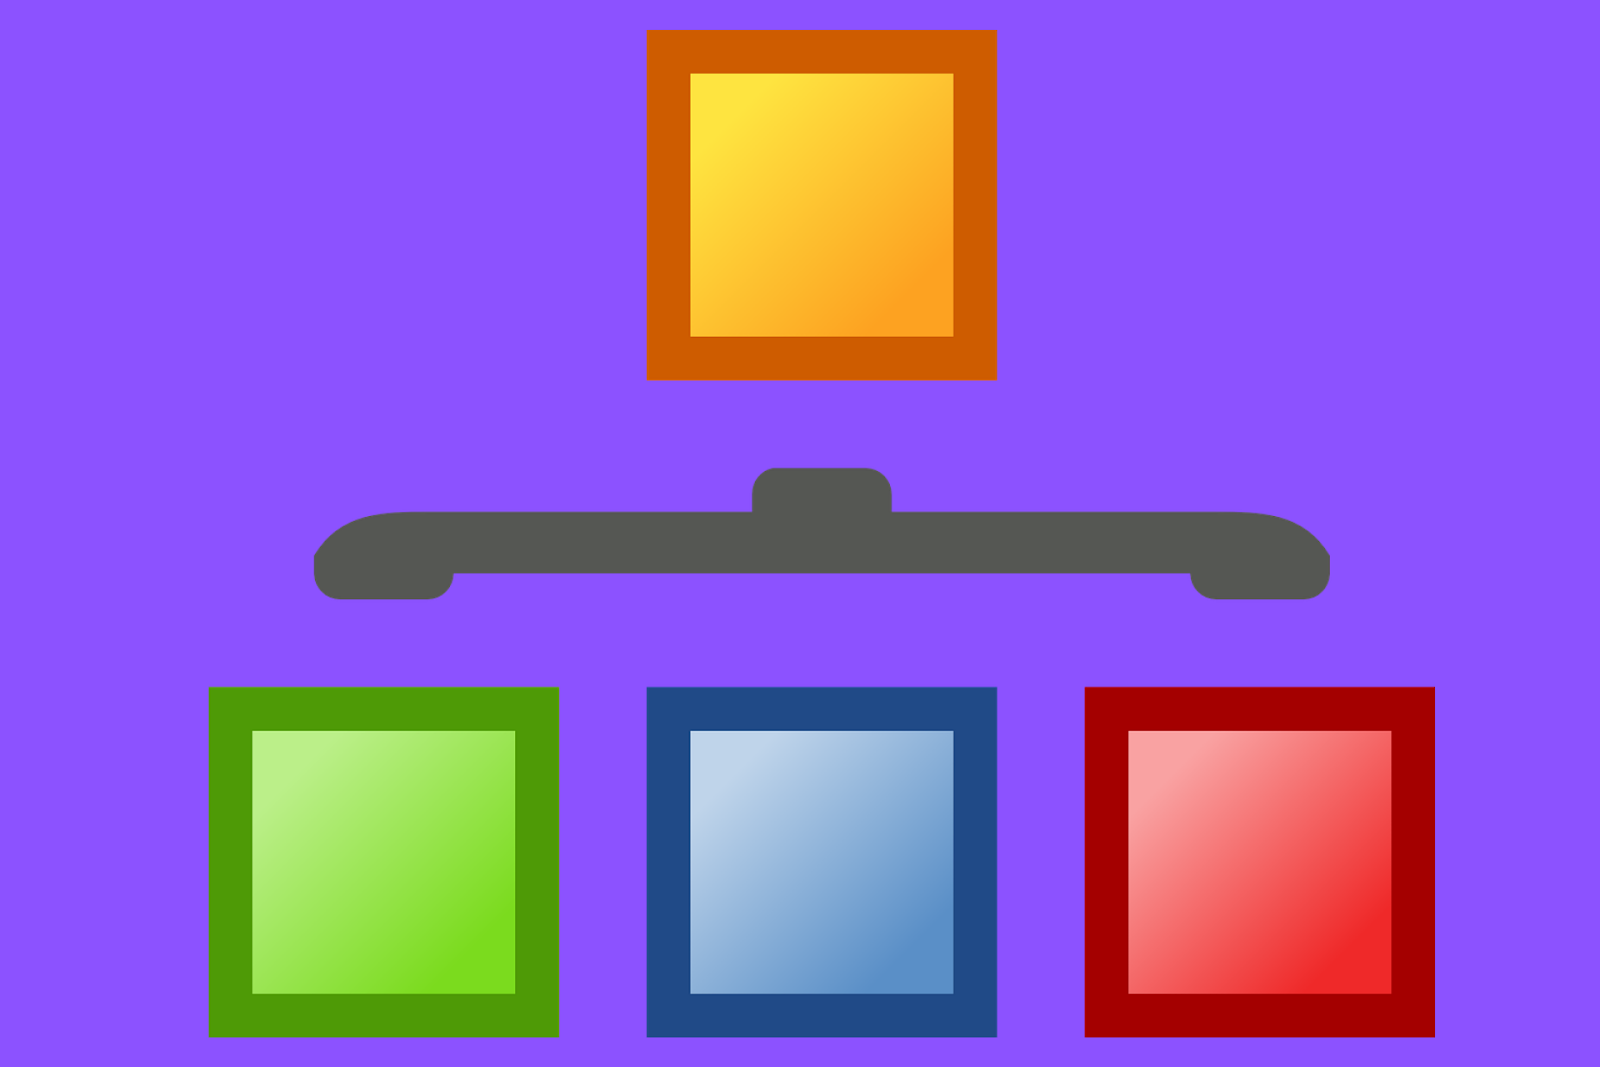 3 subcategory boxes